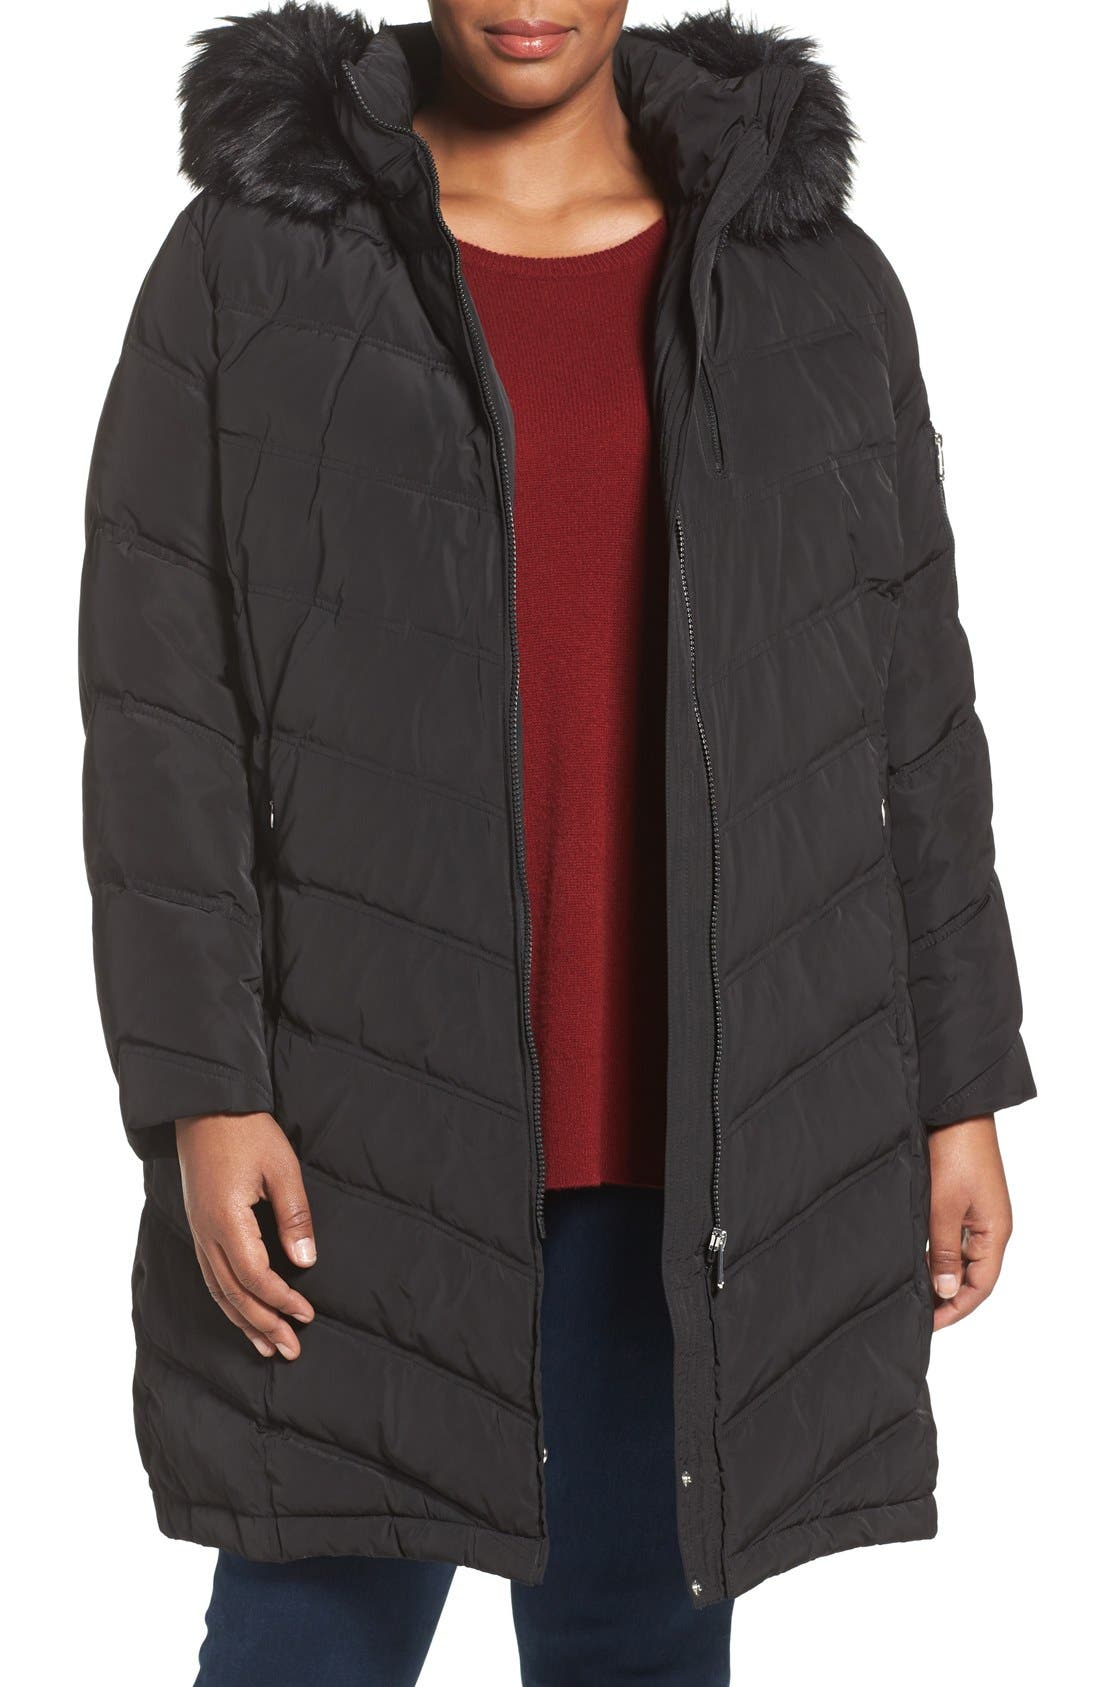 CALVIN KLEIN,                             Water Resistant Puffer Coat with Faux Fur Trim,                             Main thumbnail 1, color,                             001